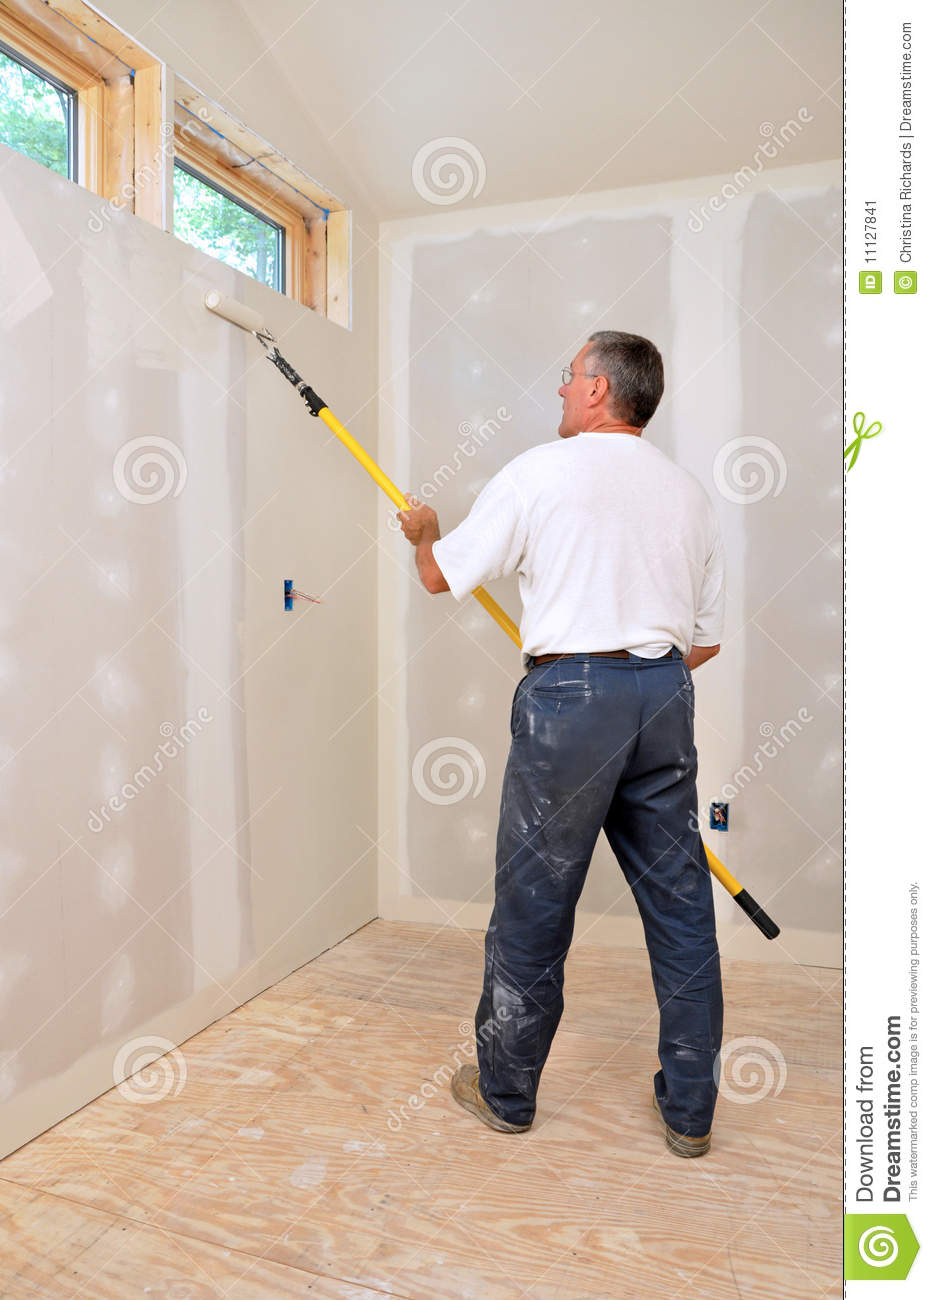 Stock Image Man Painting Room Roller Image11127841 besides Stock Photo Gorgeous Foyer Luxury House Beautiful Entrance Hall High Ceiling Columns Arch Window Image43175294 additionally 3d Rendering Restaurant additionally Stock Video 1832094 Dollar Sign Background Loop furthermore . on house room animation